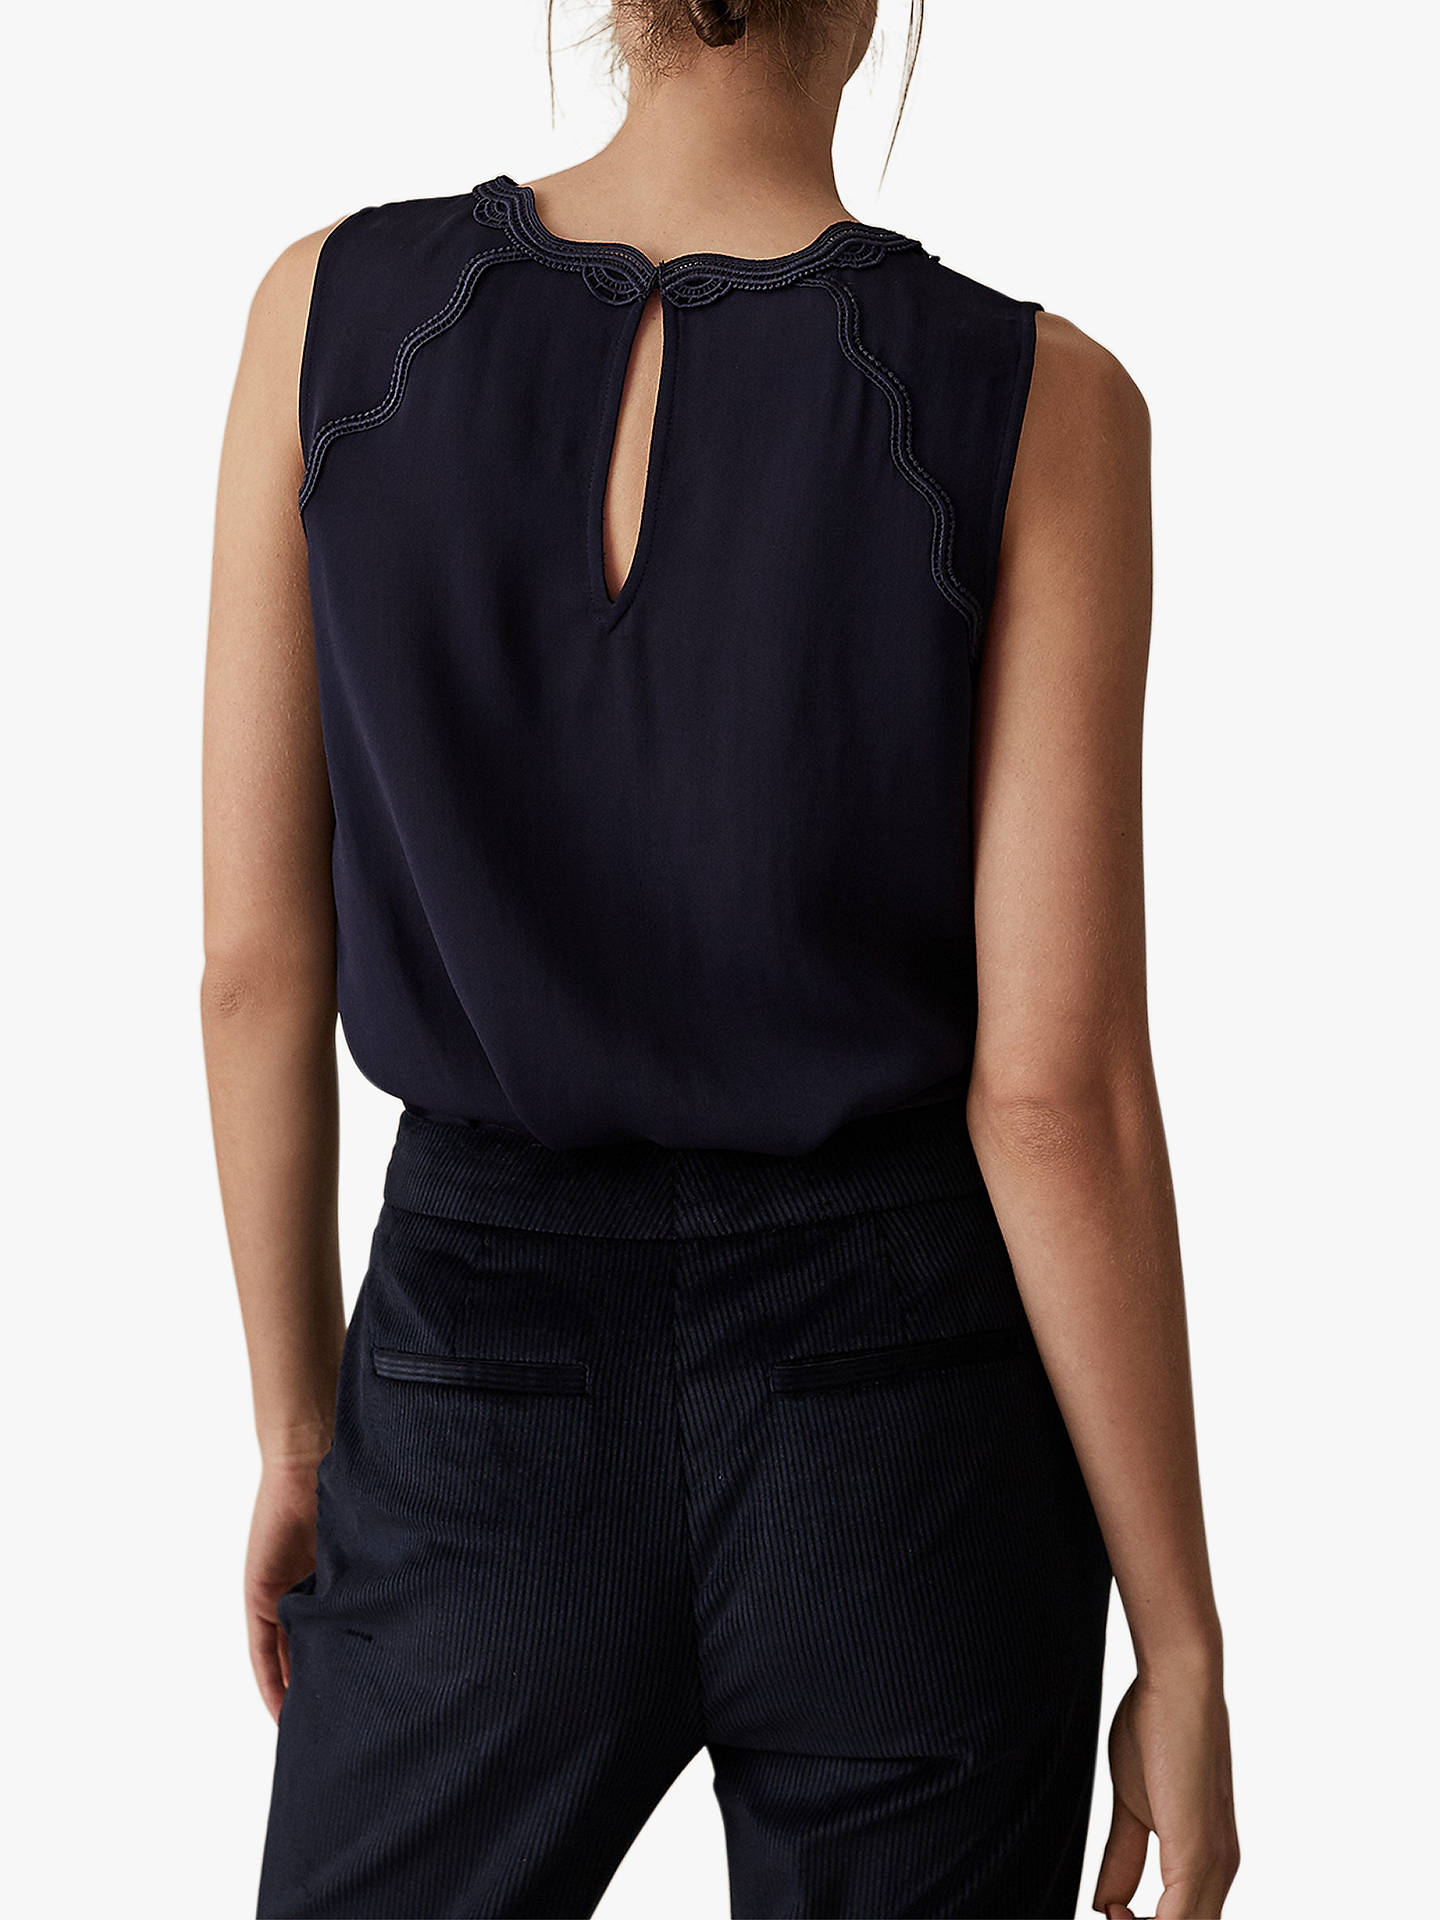 BuyReiss Helenia Scallop Neck Top, Navy, 6 Online at johnlewis.com